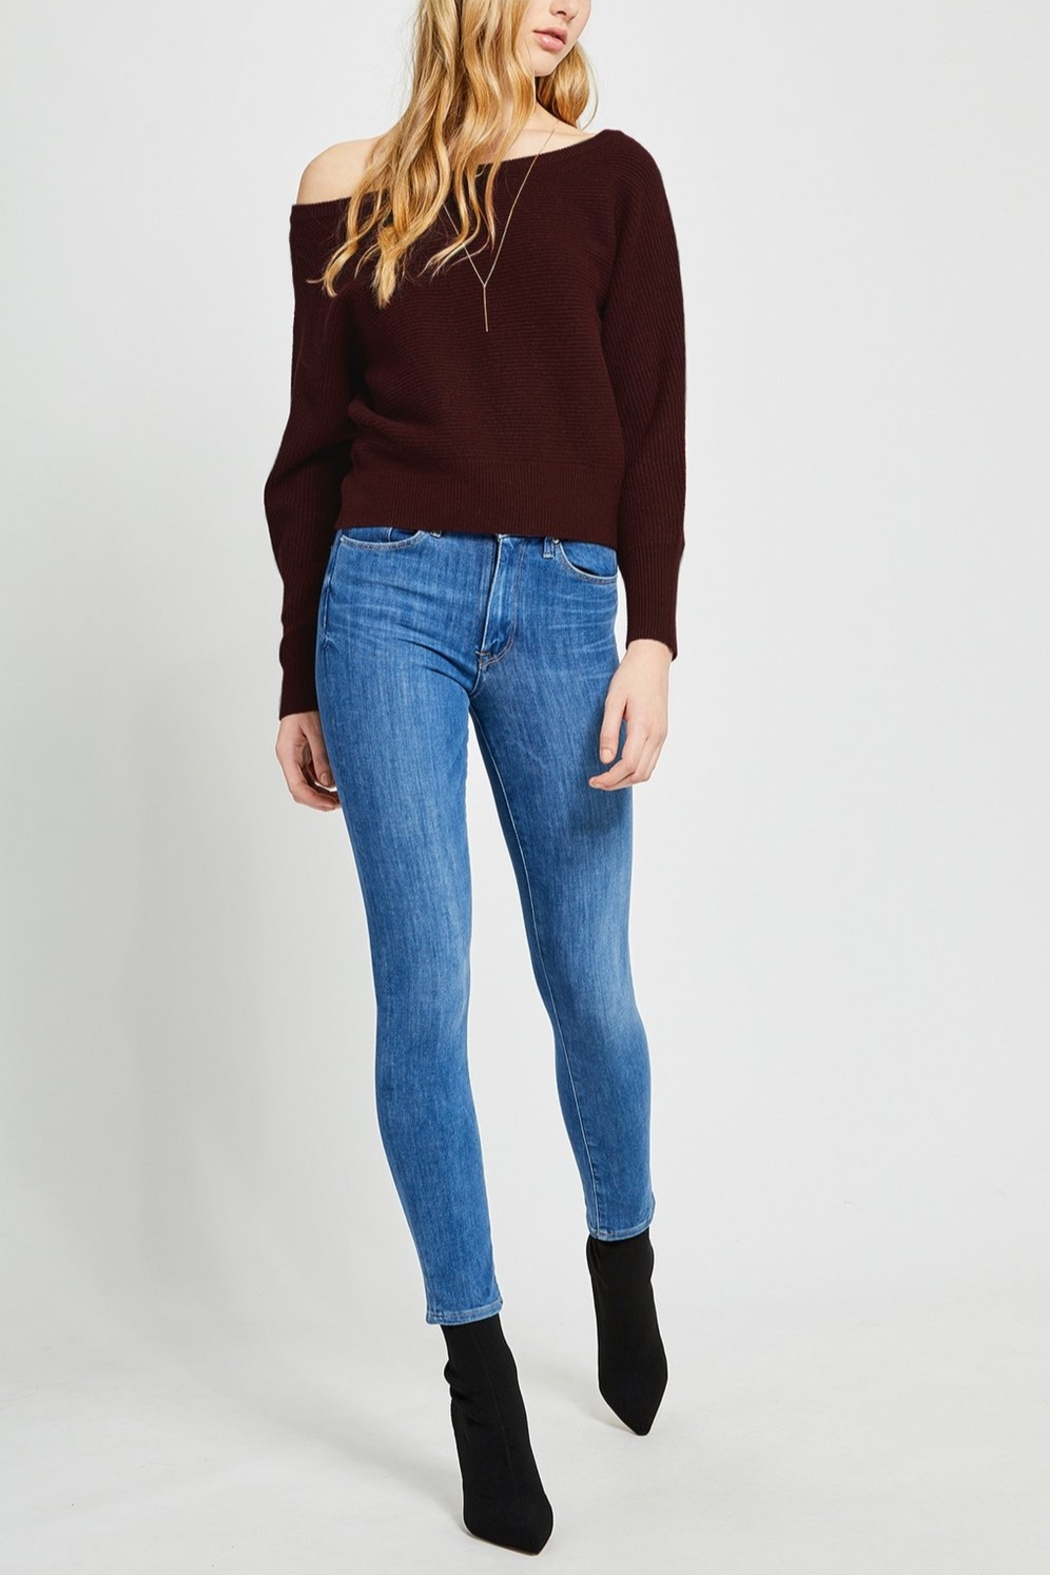 Gentle Fawn Camillo Off Shoulder Sweater - Main Image